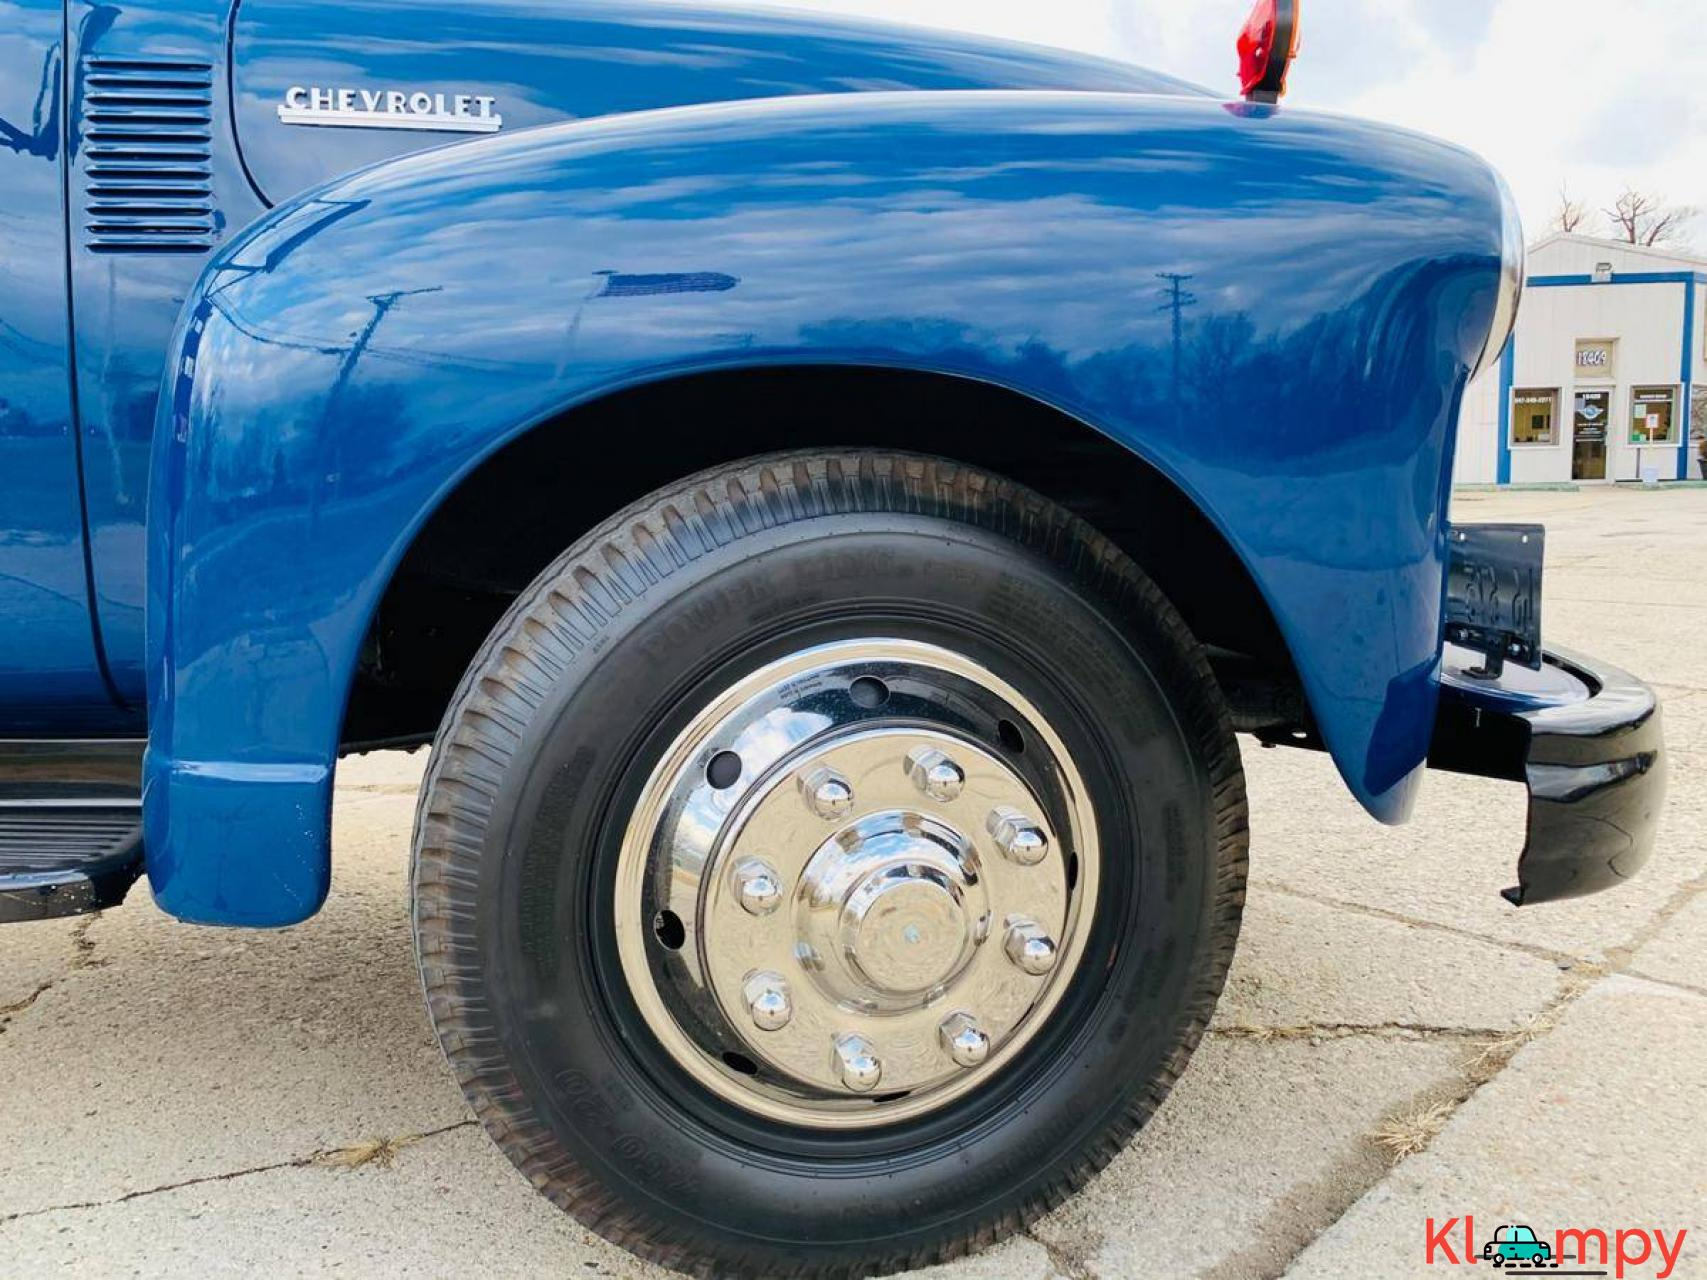 1951 Chevrolet Flat Bed Truck 235  6 CYL - 18/20